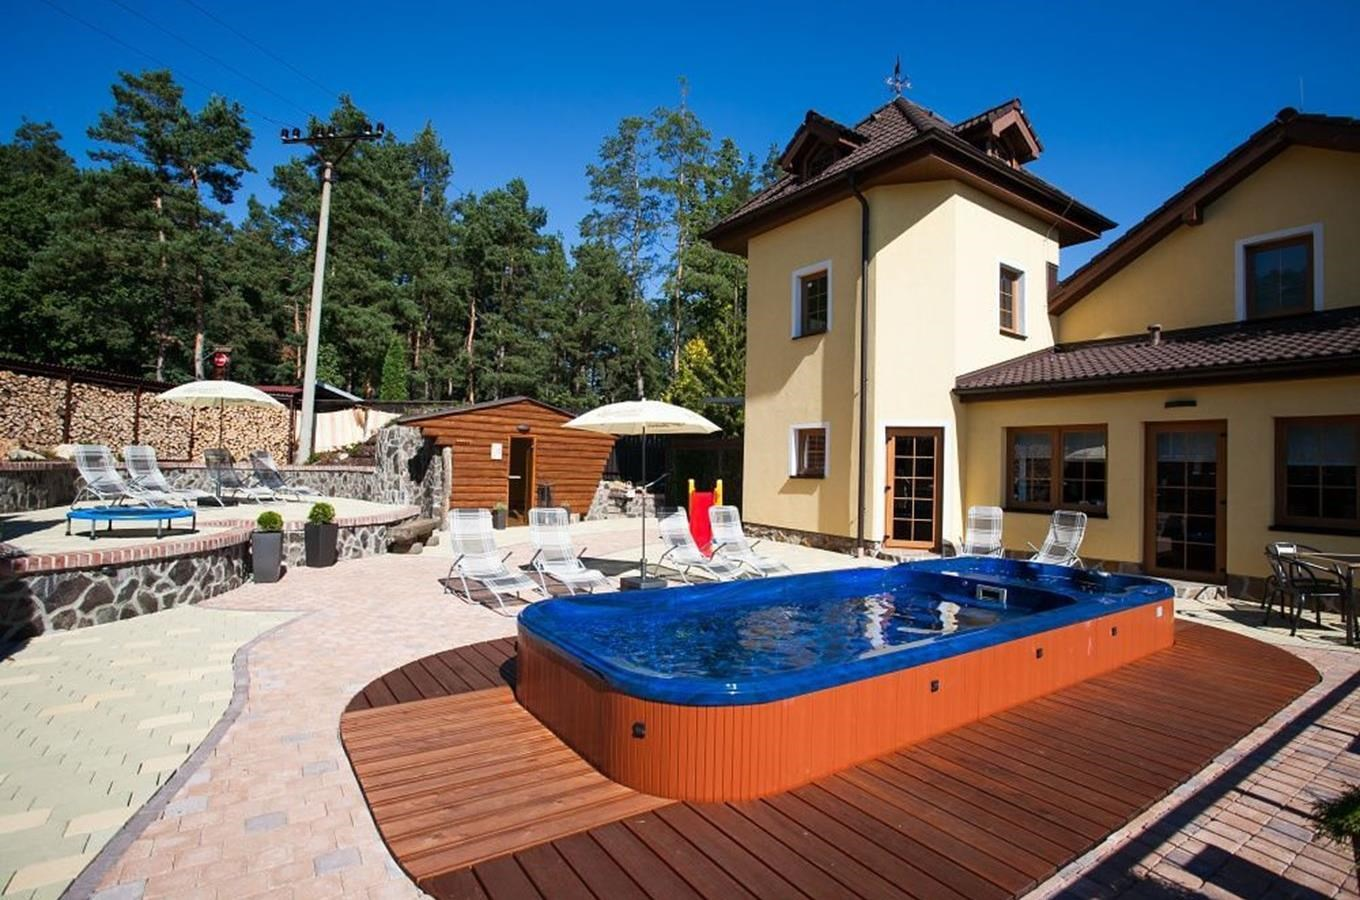 Pension-restauarce Štilec